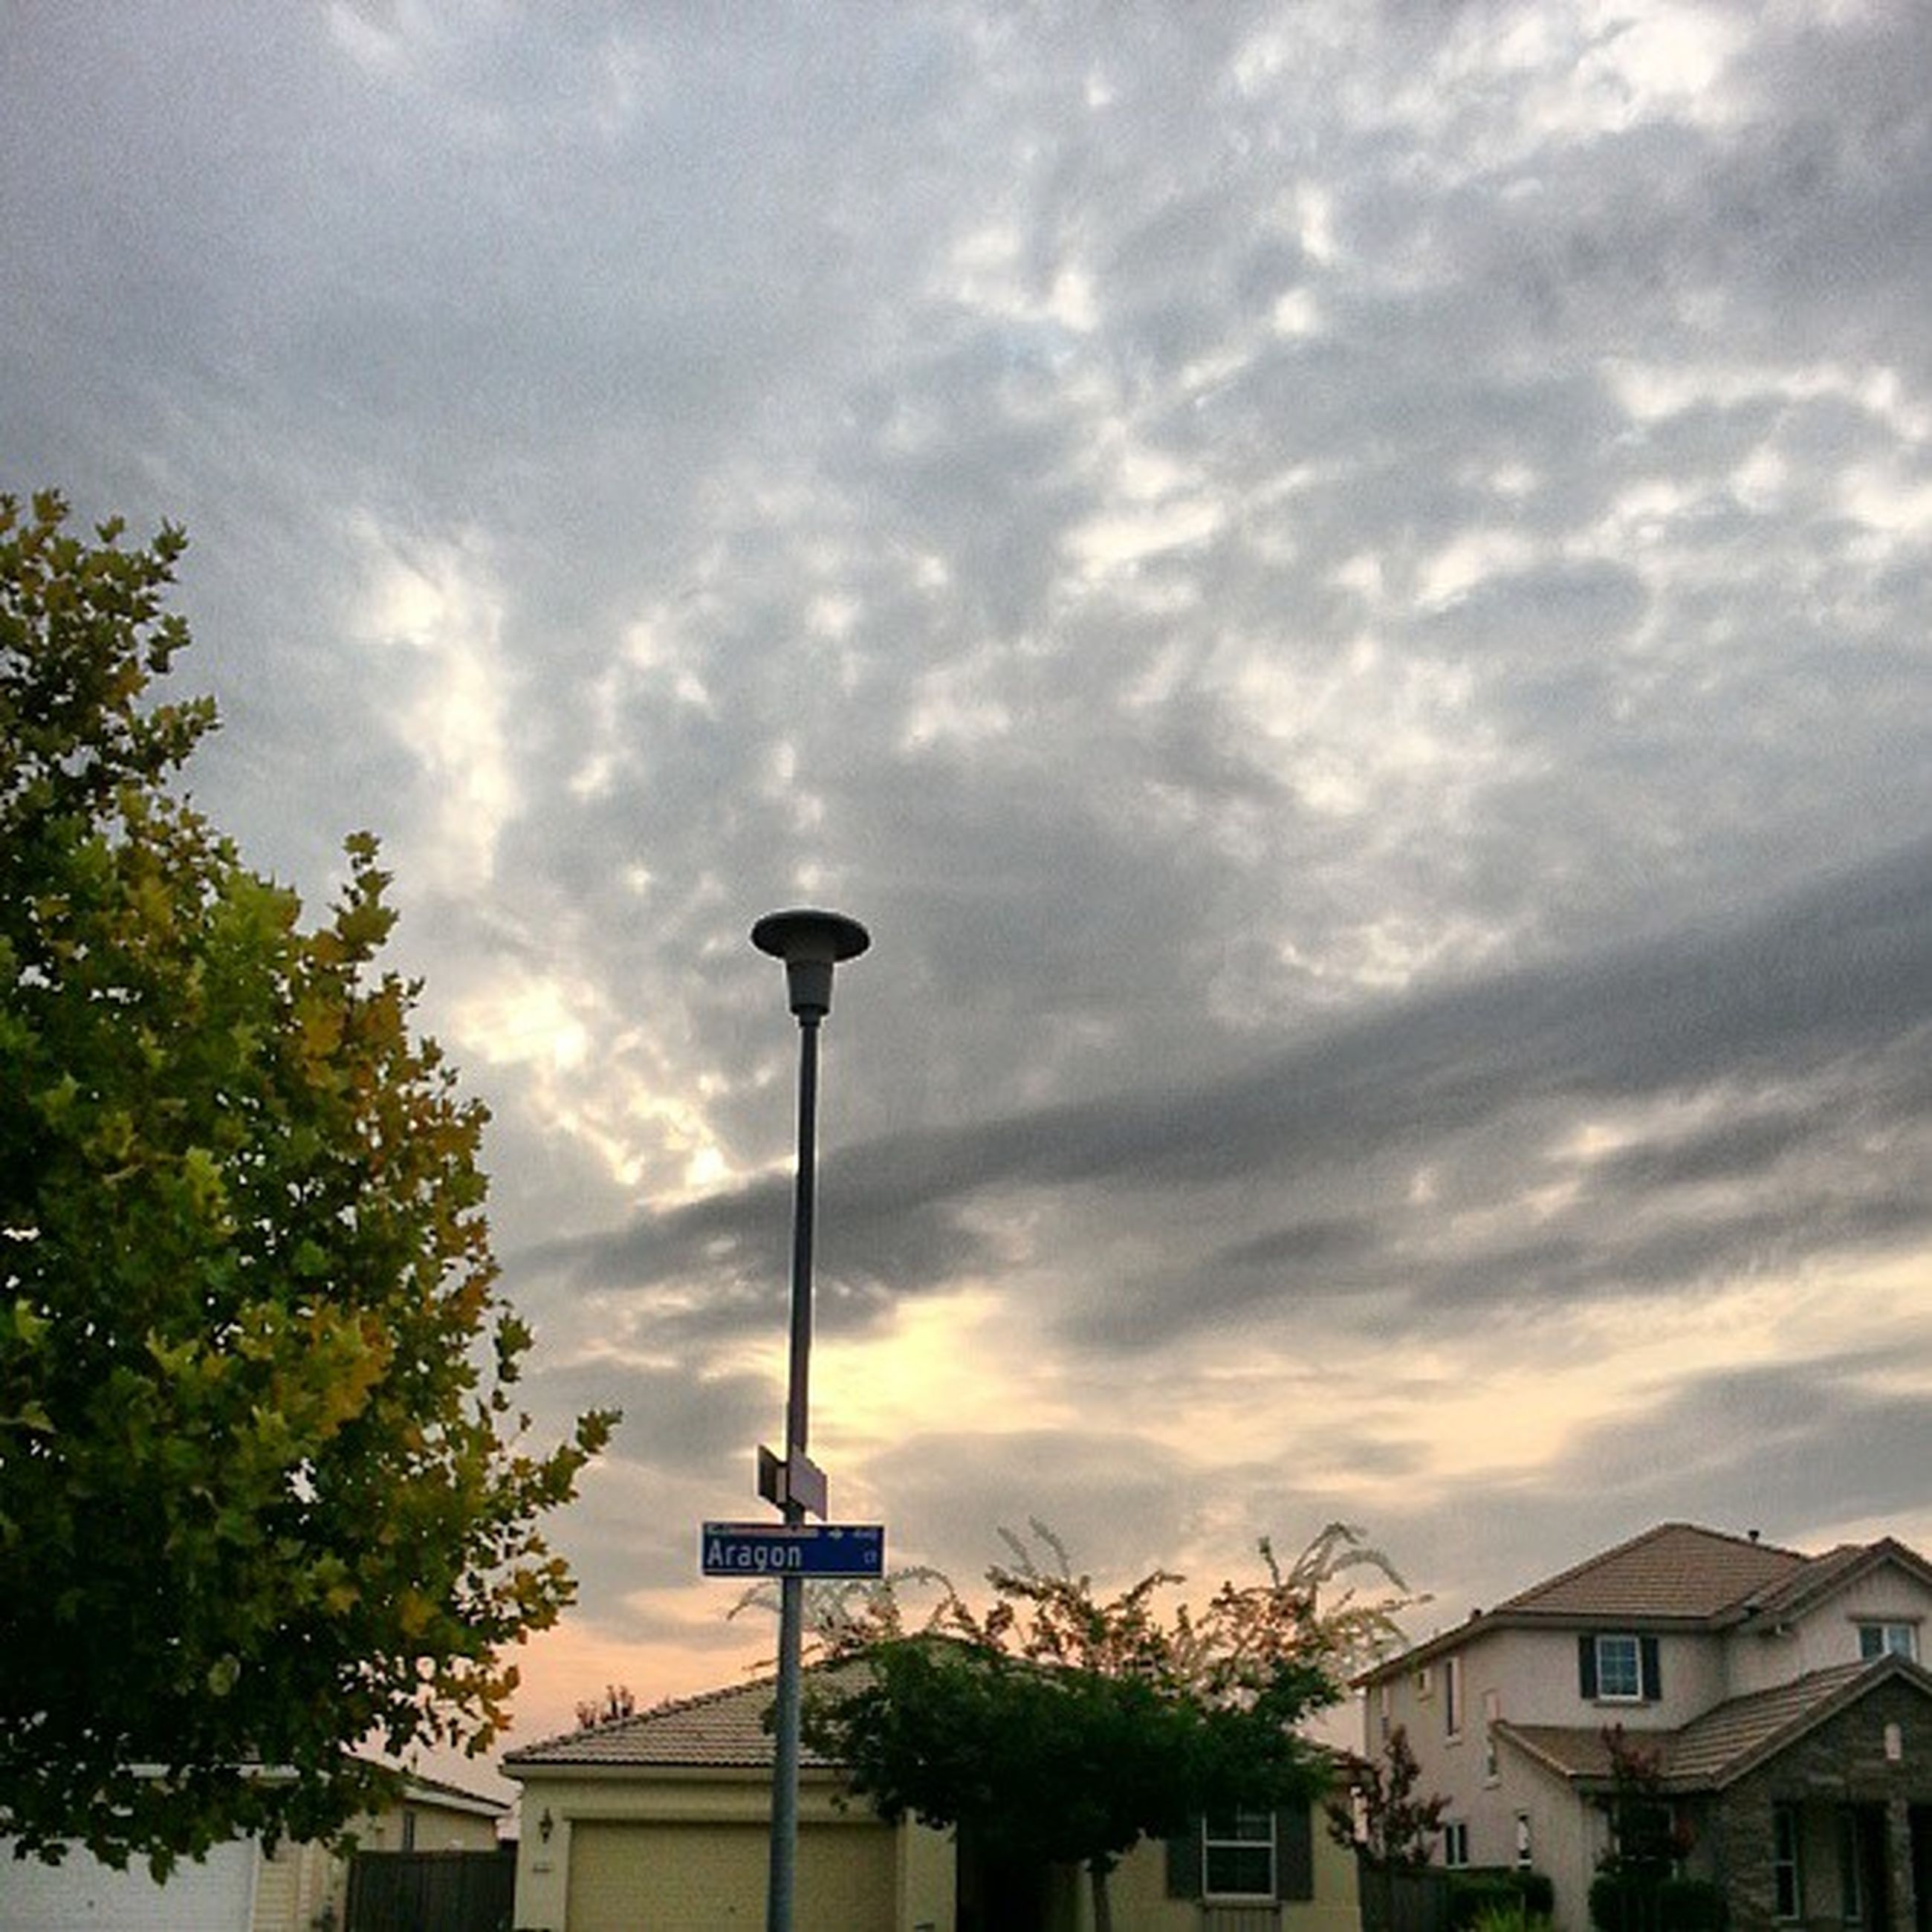 sky, building exterior, cloud - sky, architecture, built structure, cloudy, street light, tree, low angle view, cloud, weather, overcast, house, residential building, residential structure, city, outdoors, storm cloud, nature, day